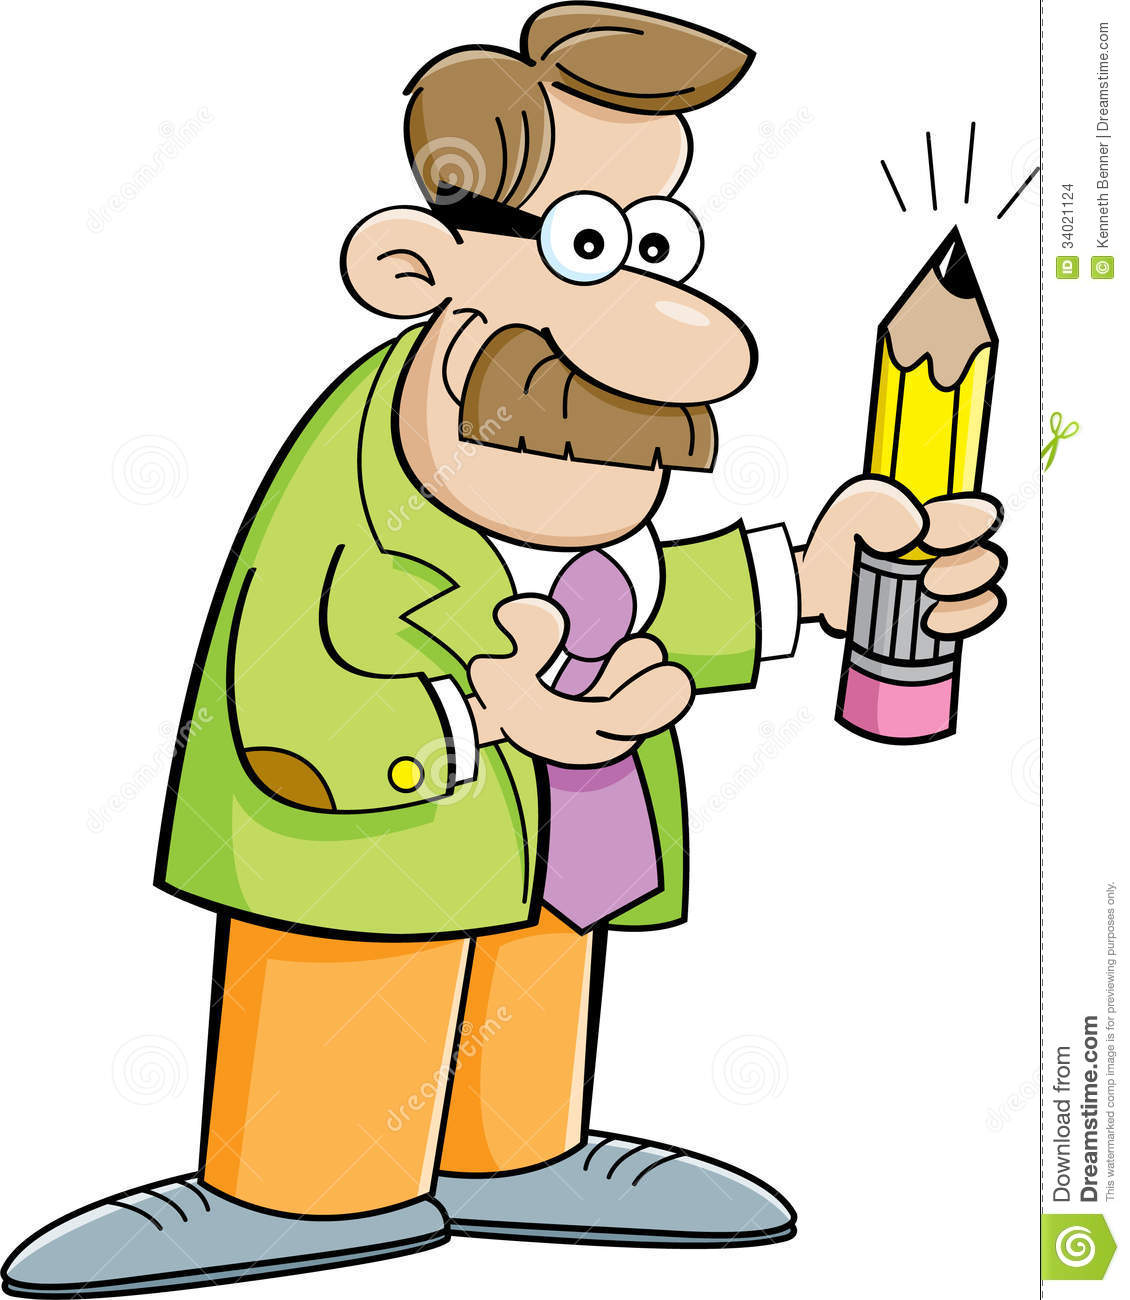 Cartoon man holding a pencil stock vector illustration